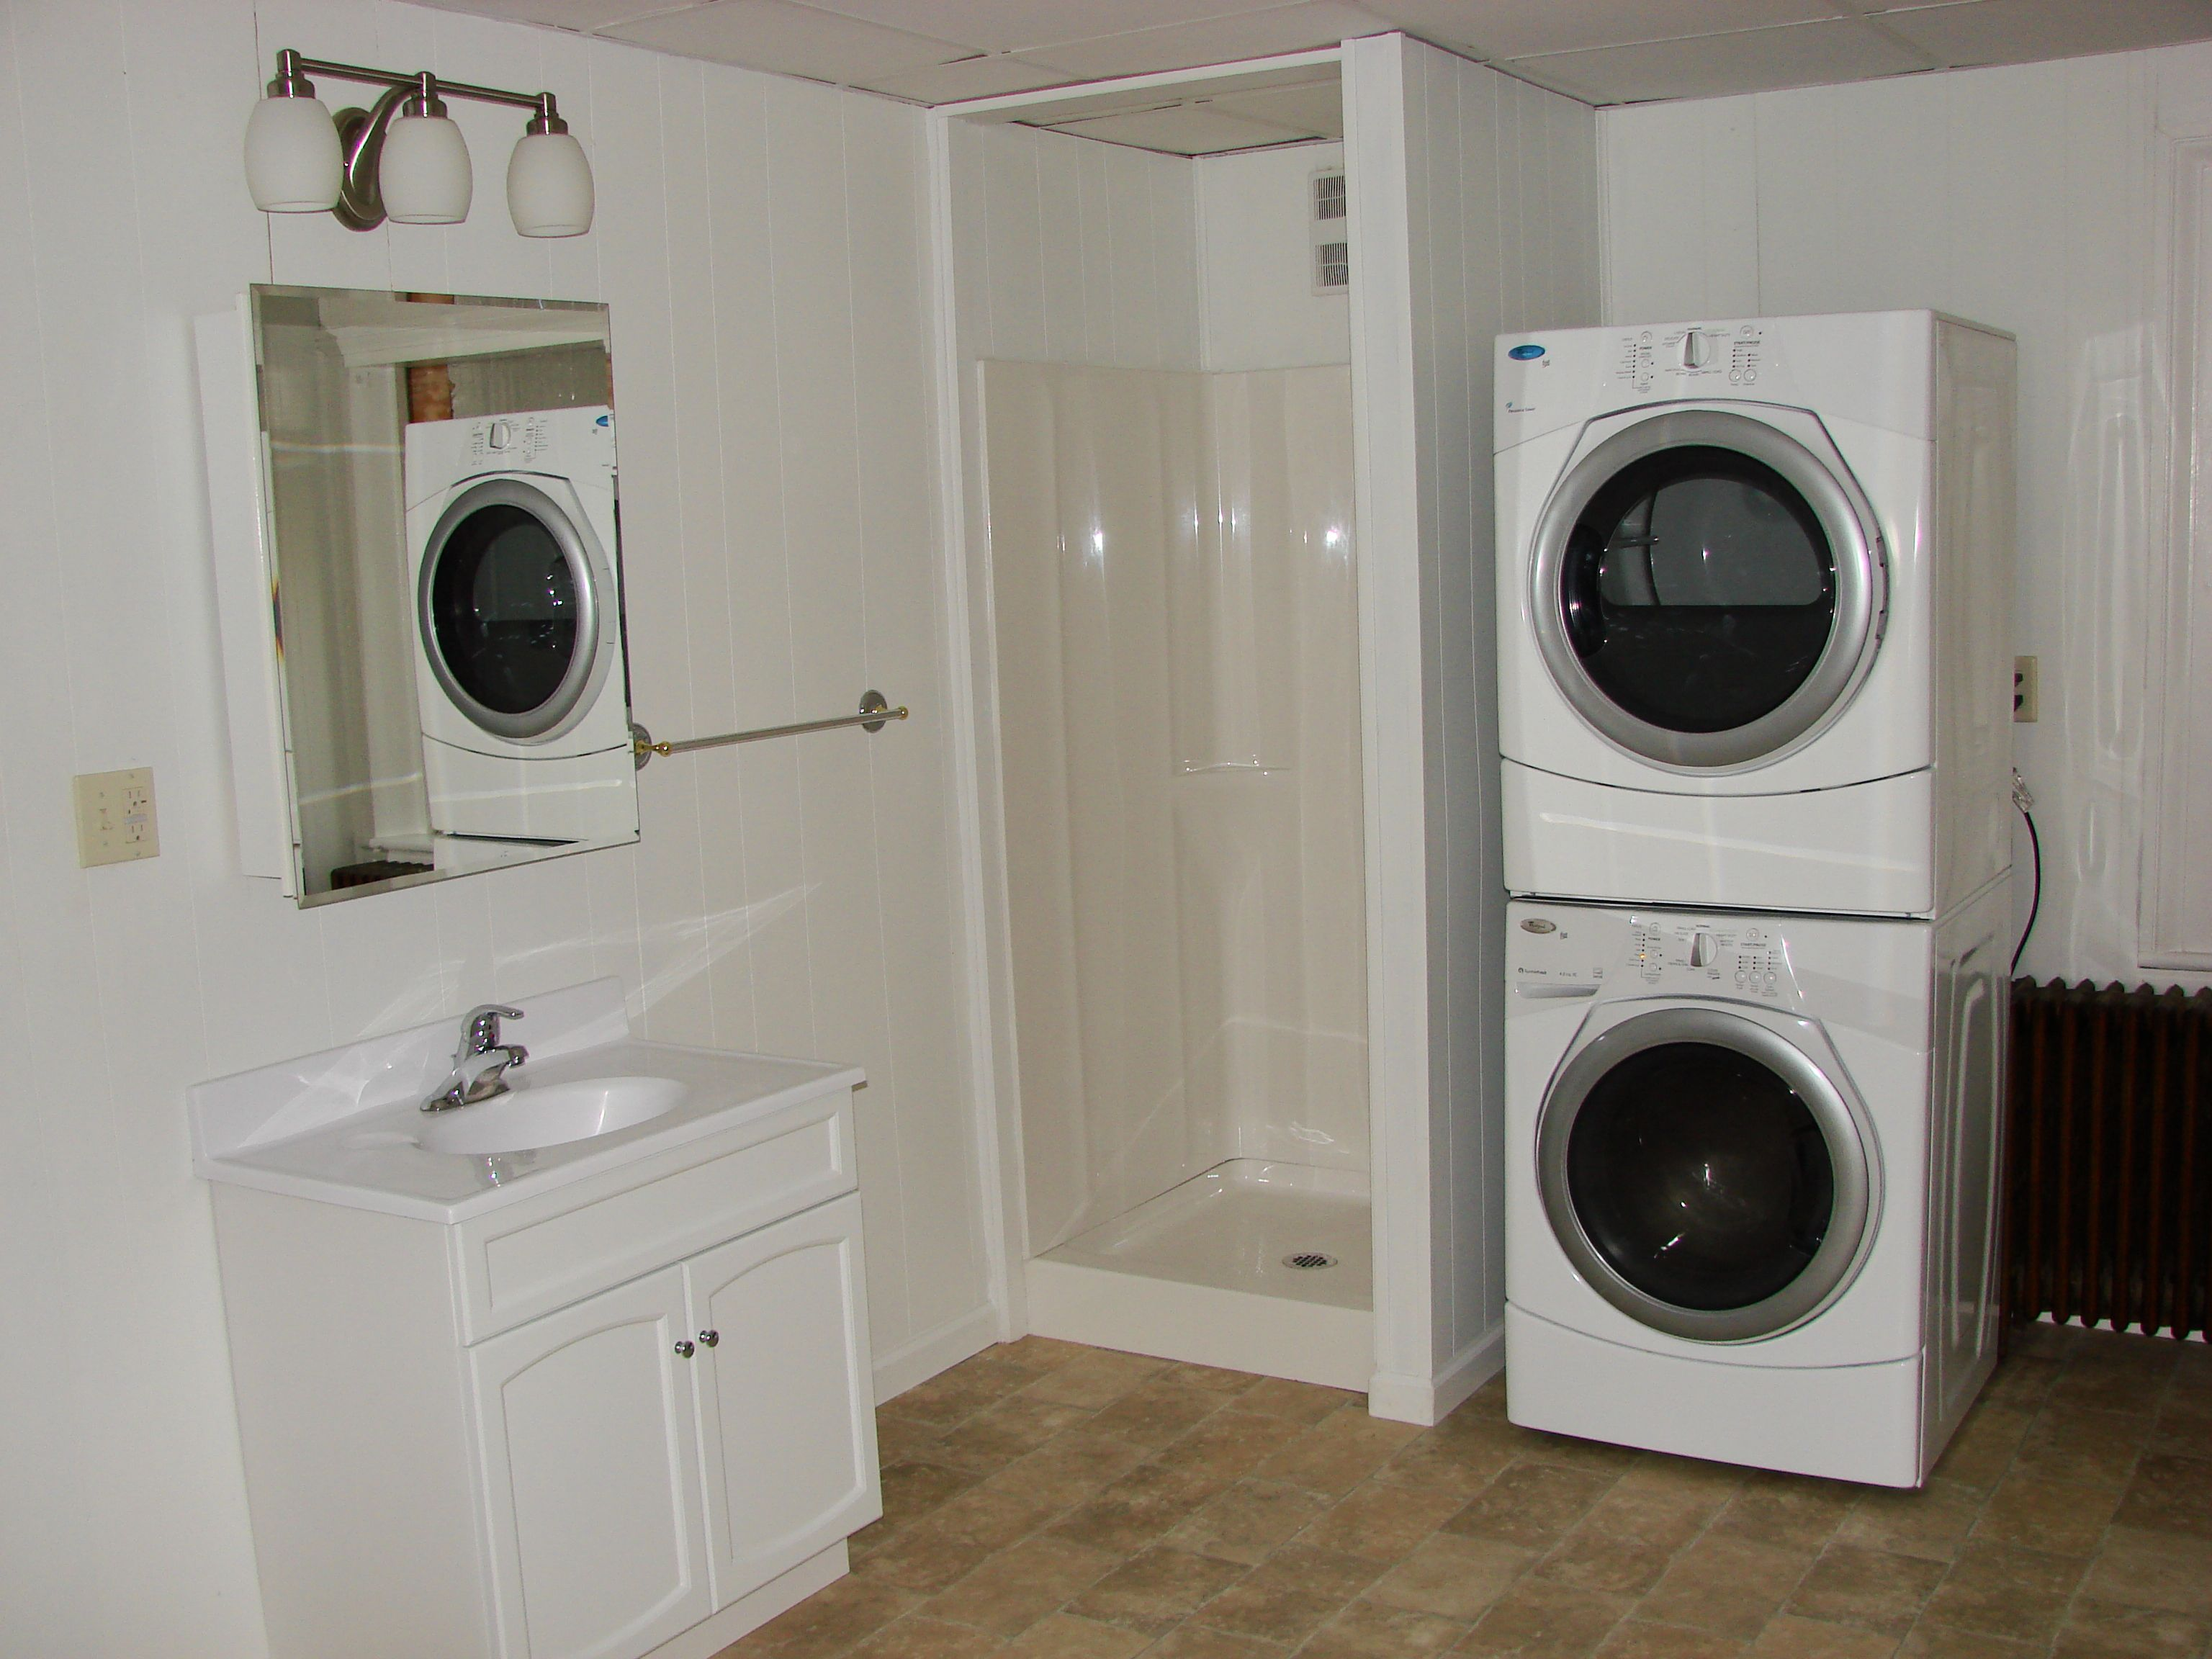 Cool White Wash Machine And Dry Machine On The Side Of Laundry Room Layout With Small Space Room